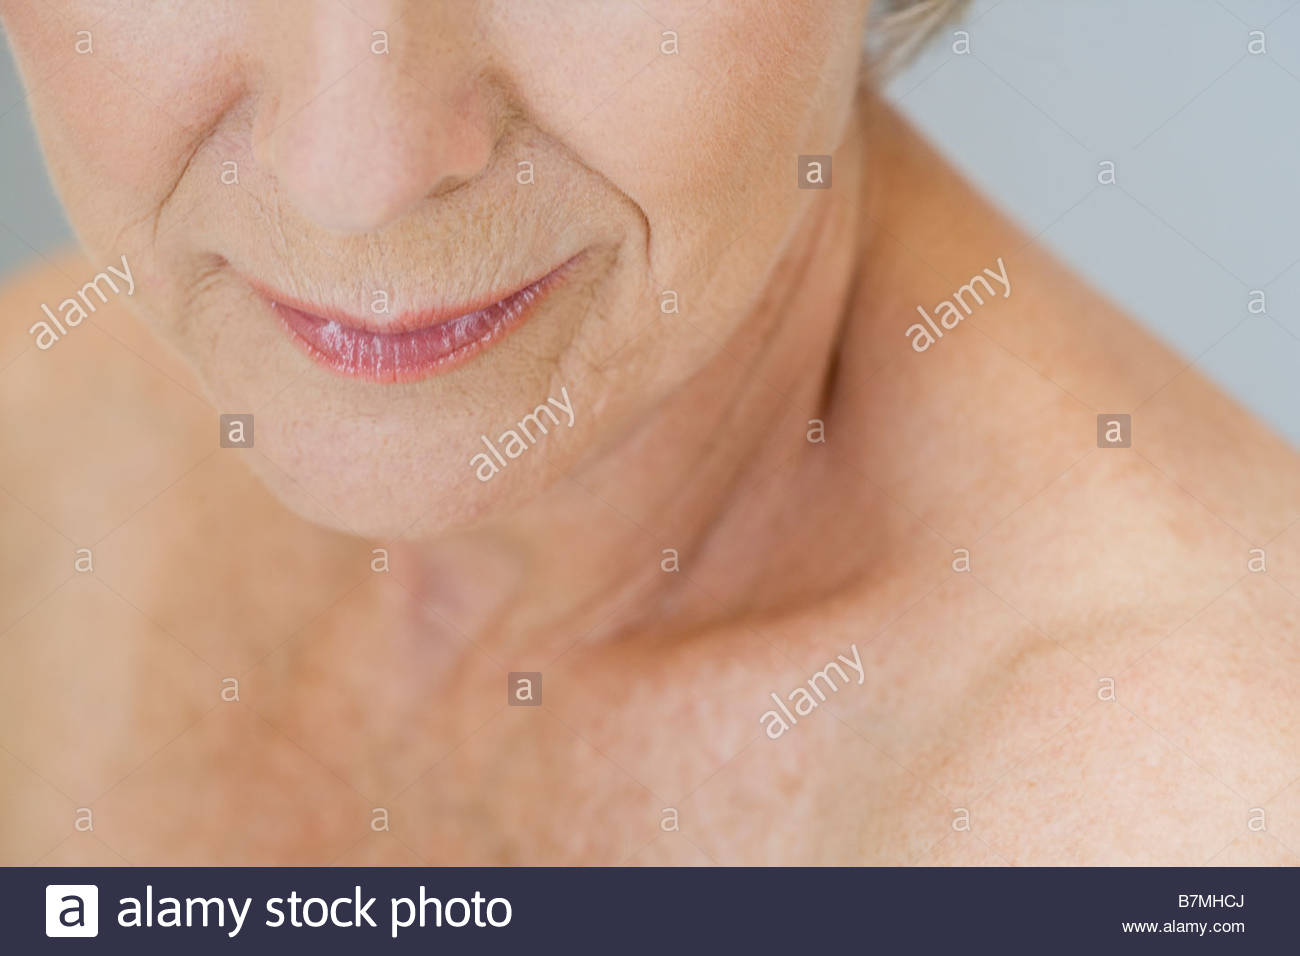 A senior woman, detail of lower half of face and shoulder - Stock Image